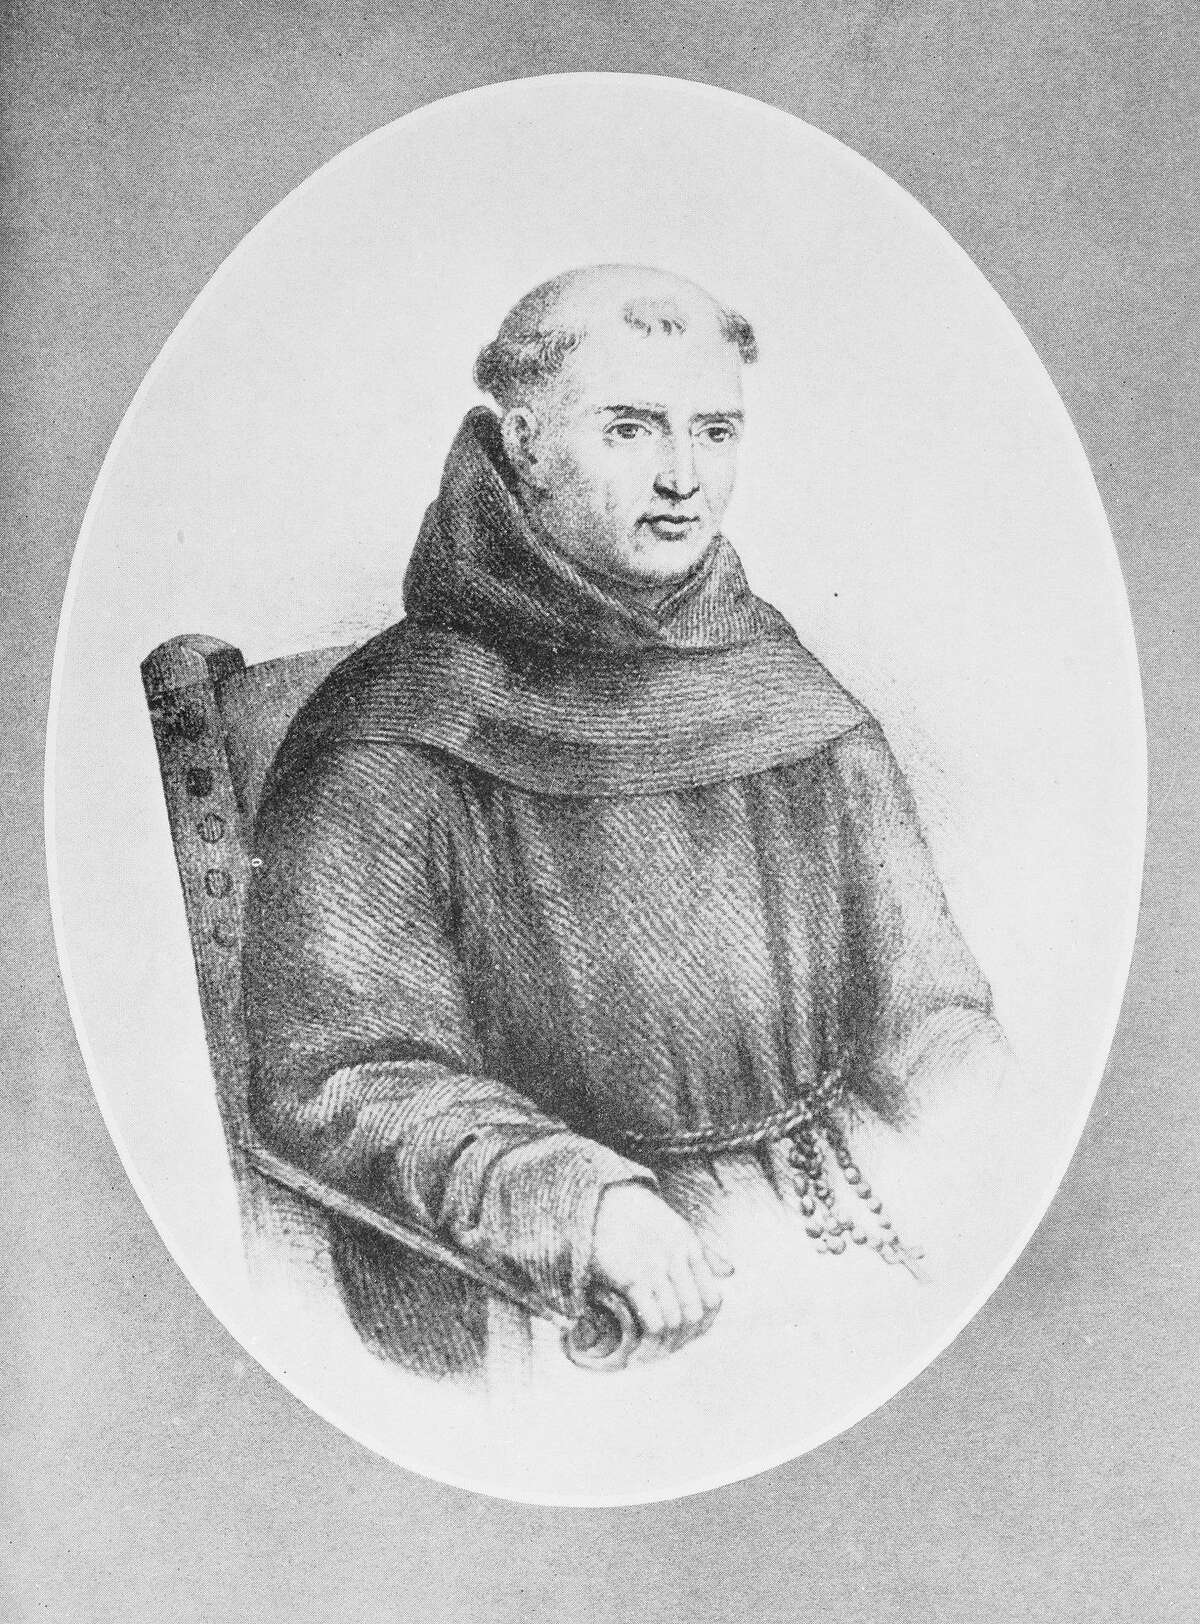 Illustration of Father Junipero Serra in Priestly Dress(Original Caption) Father Junipero Serra. father Junipero Serra 1713-84. Spanish missionary called the Apostle of California. Entered Franciscan order 1730, sent to lower California 1767, founded numerous missions while strenuously defending Indians. Undated illustration.